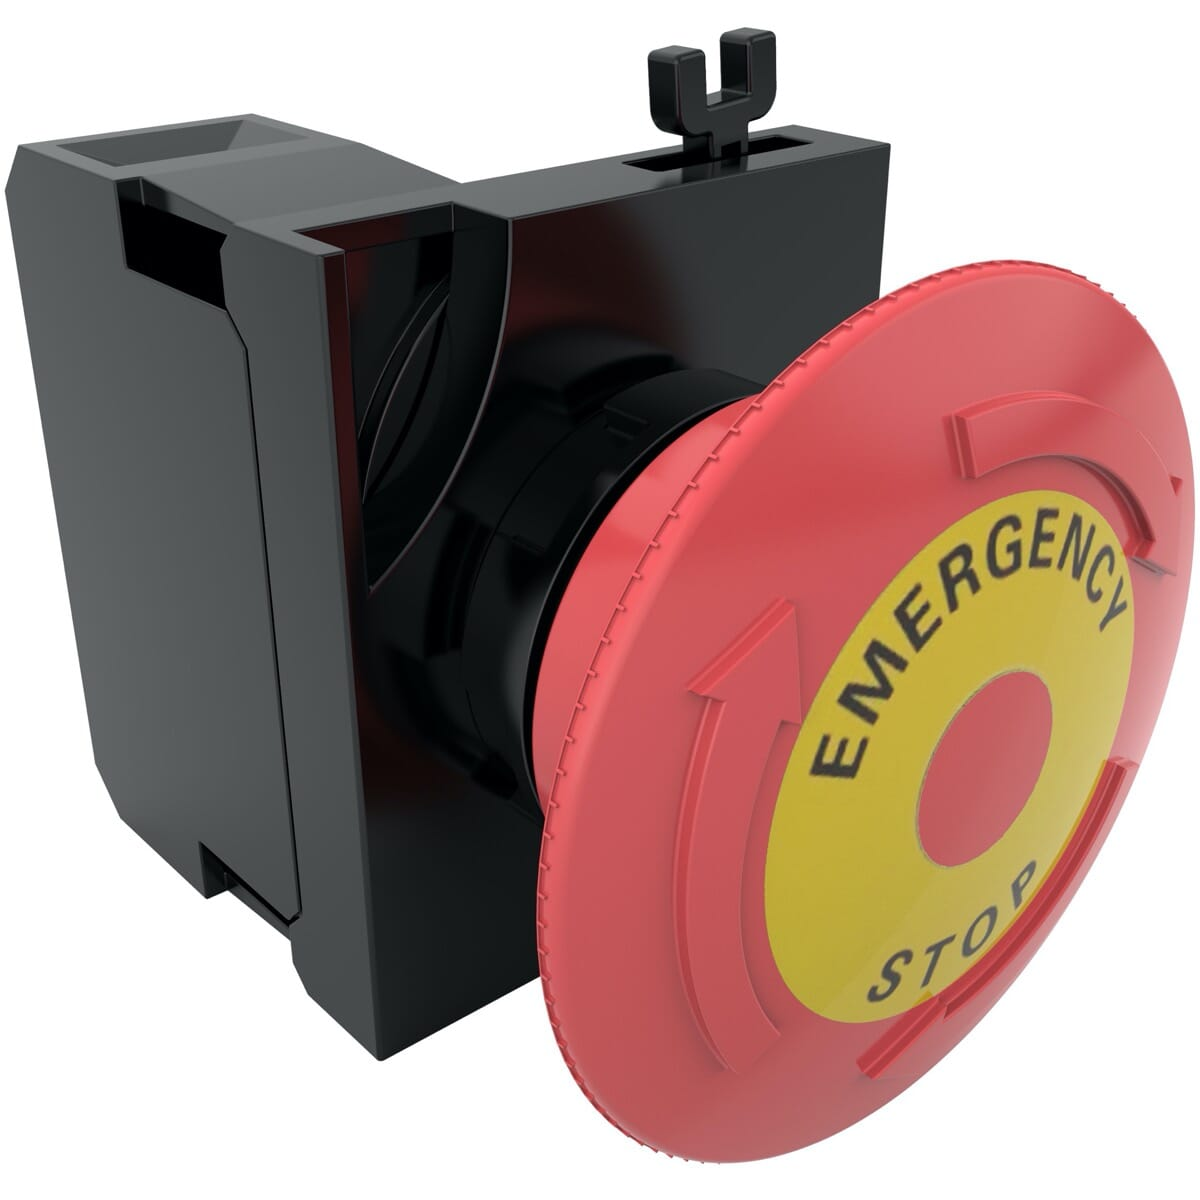 40mm IP65 Emergency Buttons, With Label (V2) - Red Polyamide